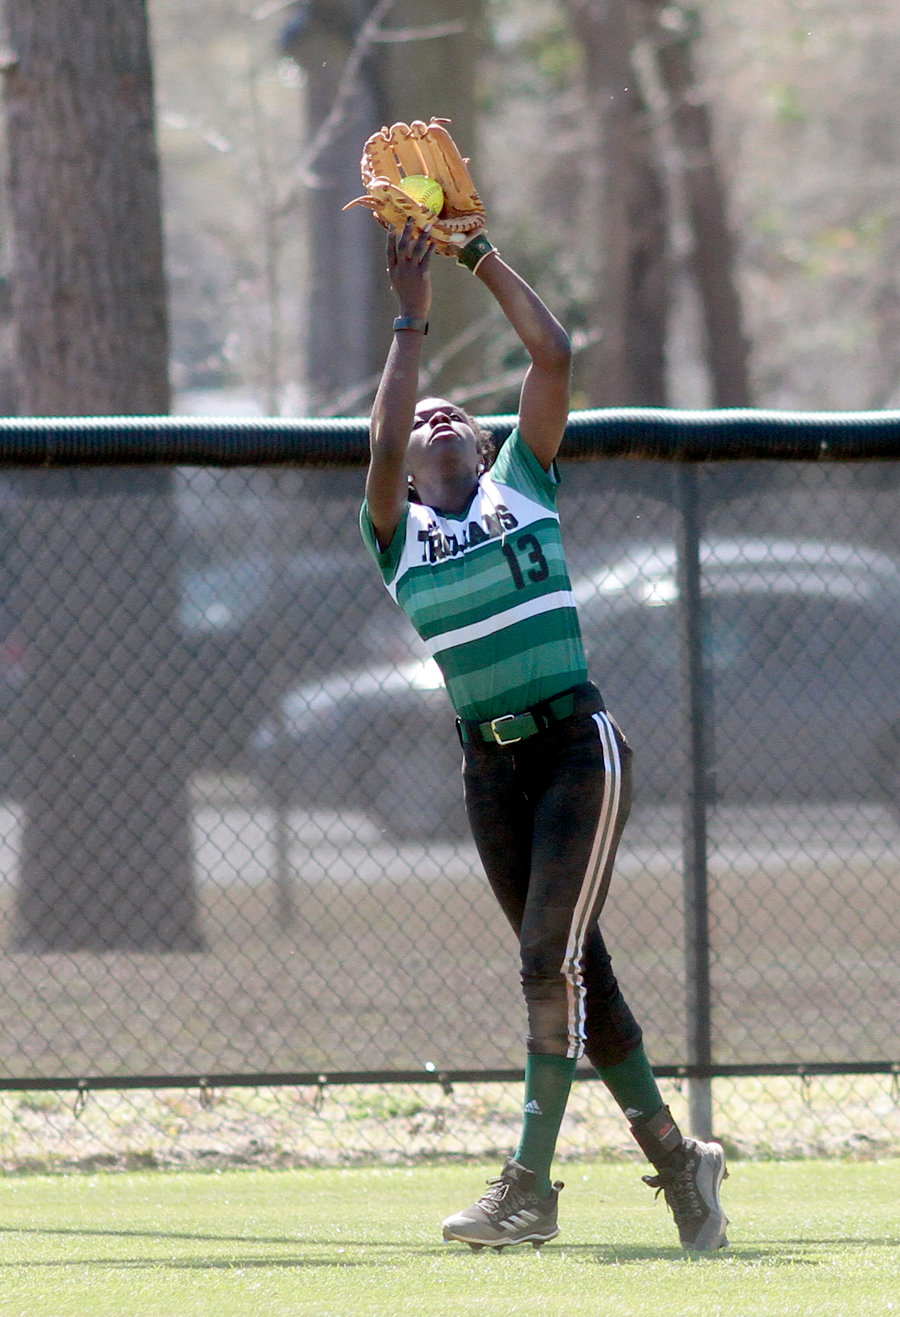 Charlene Thompson reeling in a flyout in the Trojans game one win.